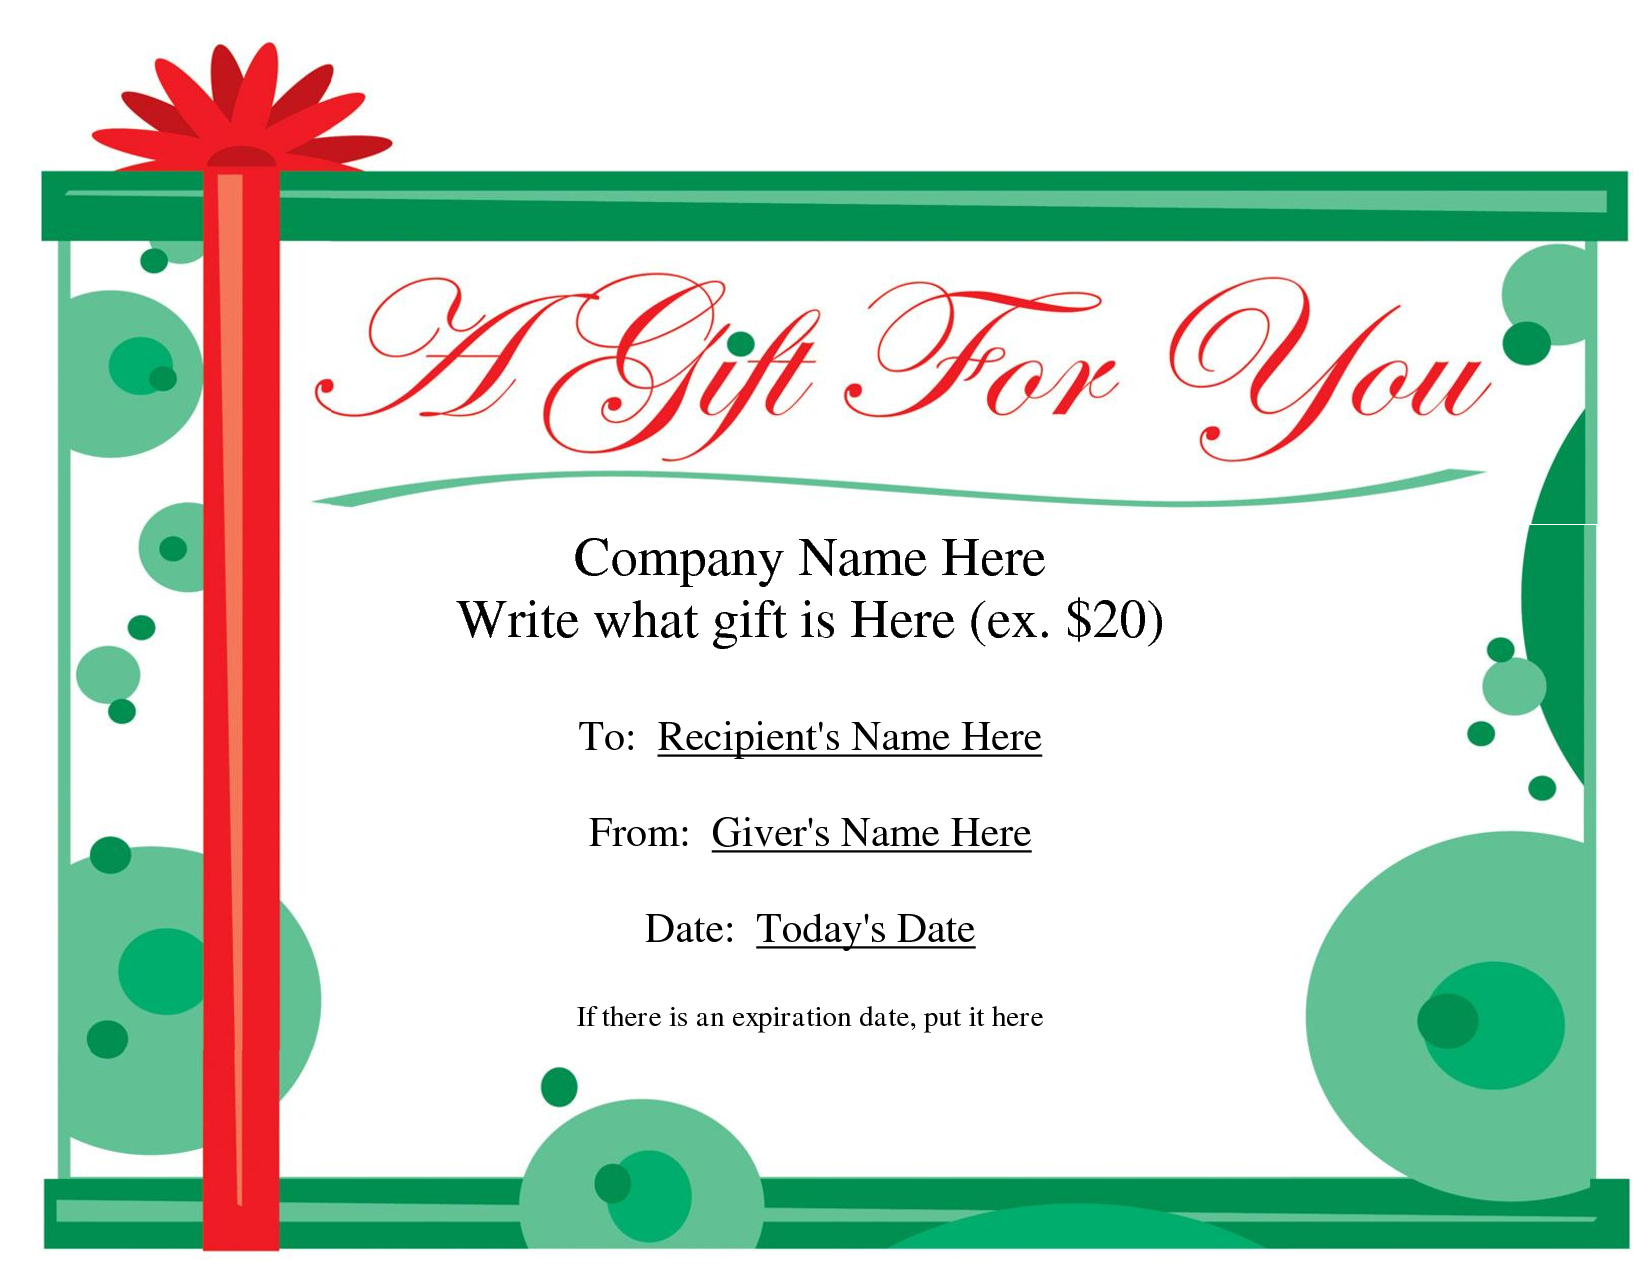 Free Christmas Gift Certificate Templates | Ideas For The House - Free Printable Christmas Gift Cards